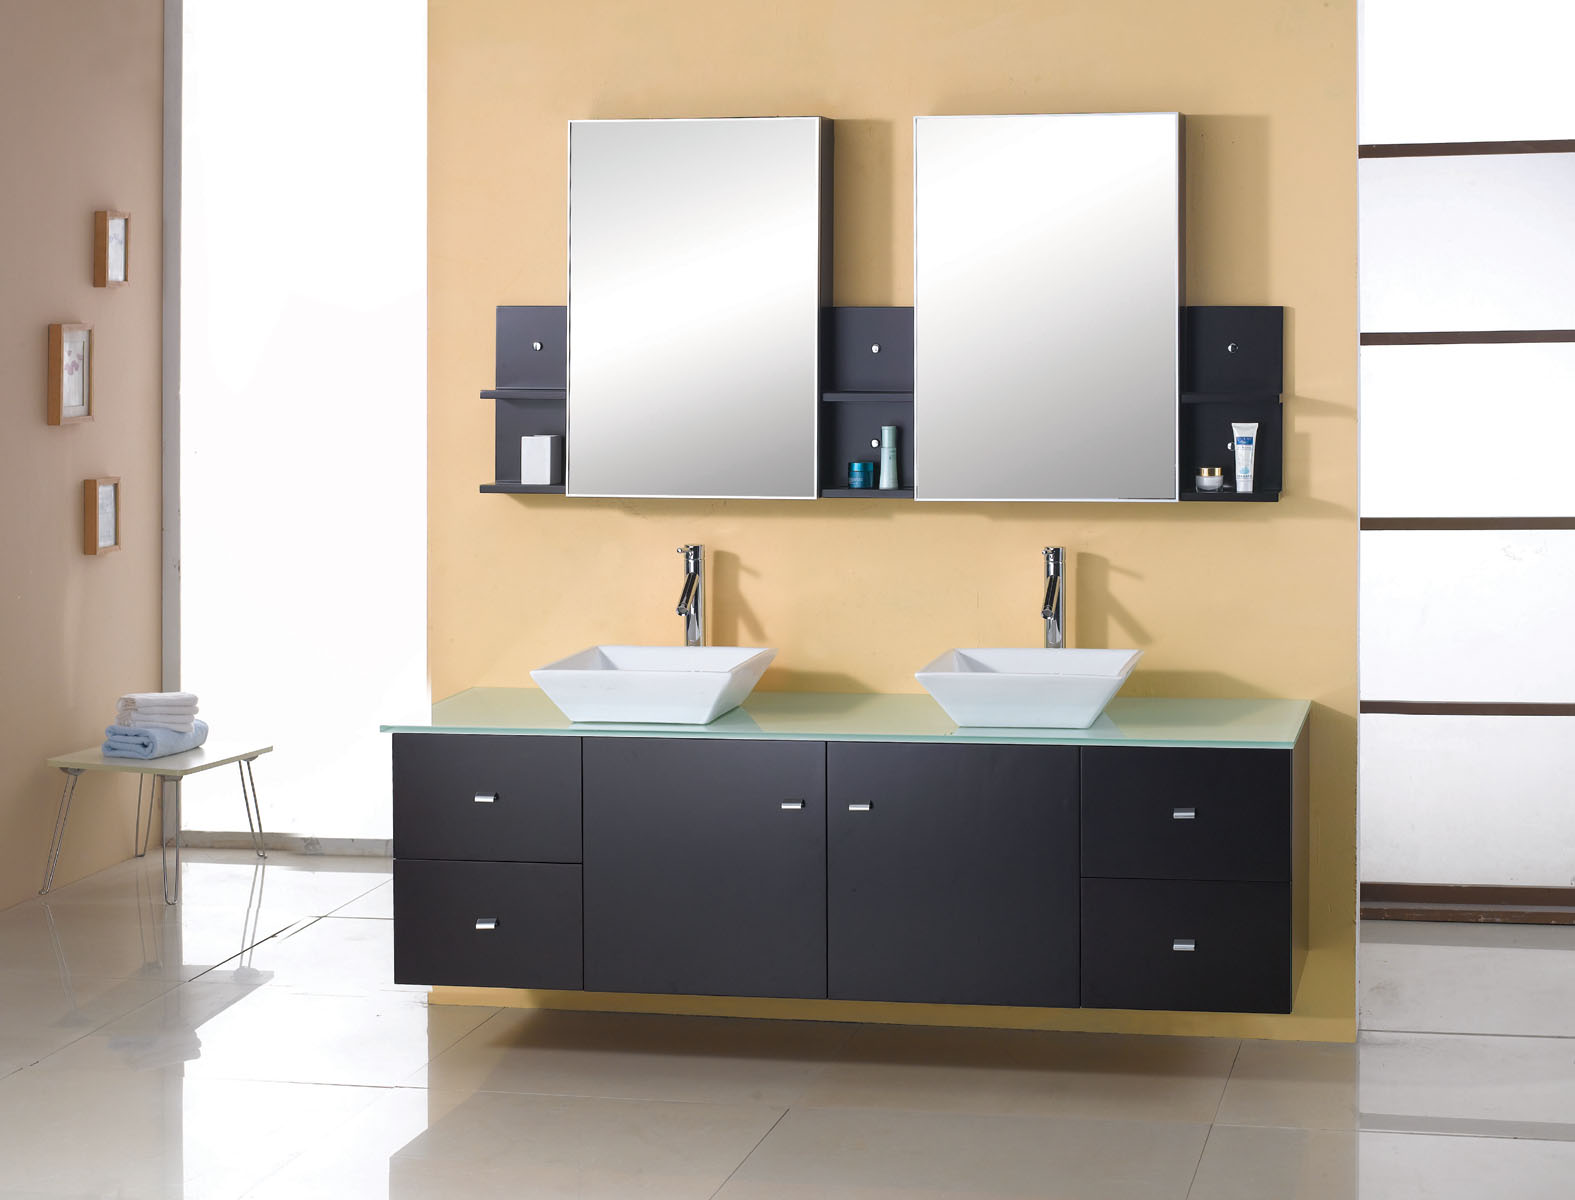 Picture of: Floating Bathroom Vanity Stylish